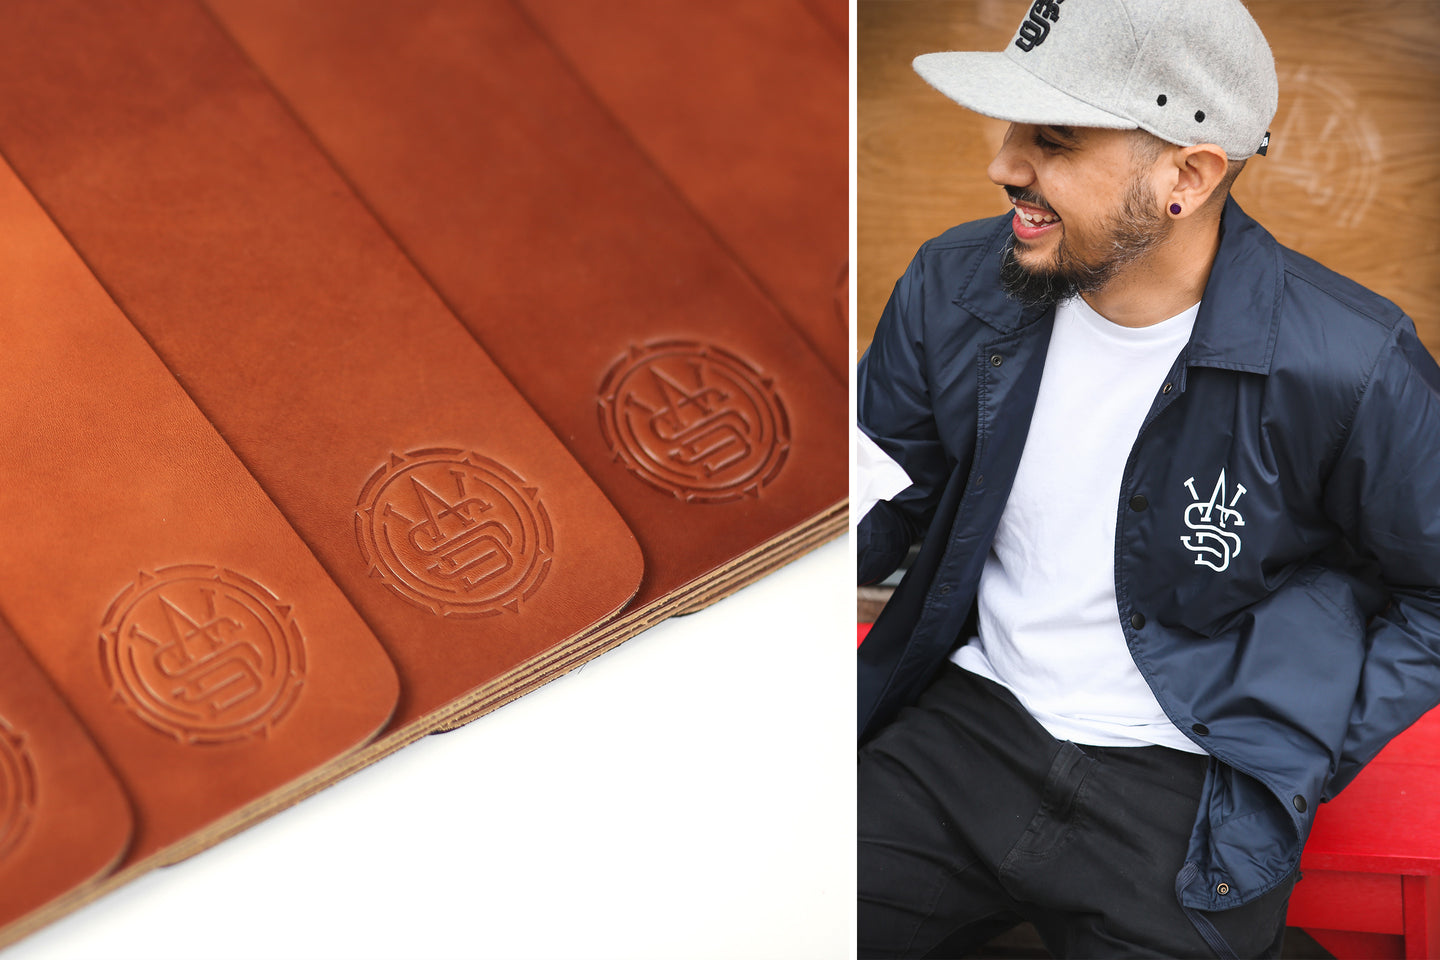 WASD Leather Mouse Pad - Detail, WASD Coaches Jacket & WASD Wool 6-Panel Hat